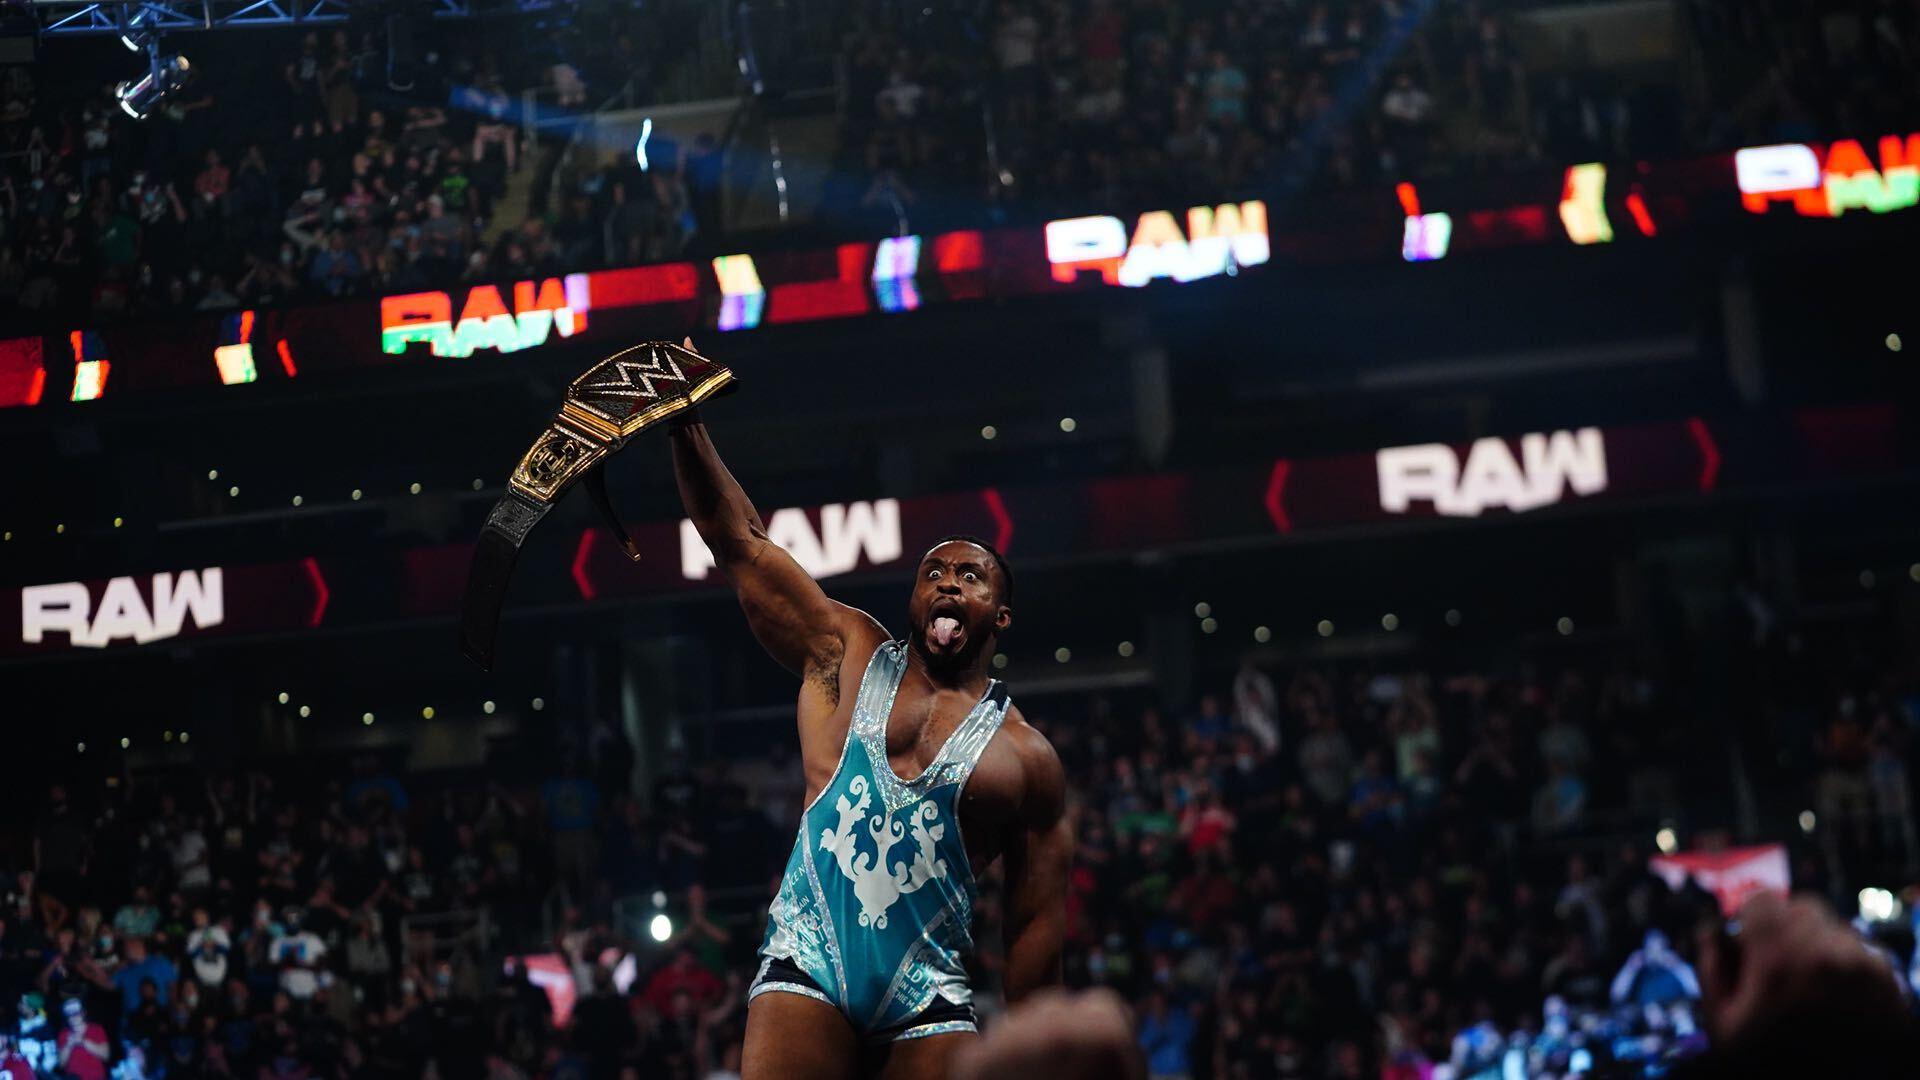 Big E Cashes In Money In The Bank 2021 Contract To Become New WWE Champion 29